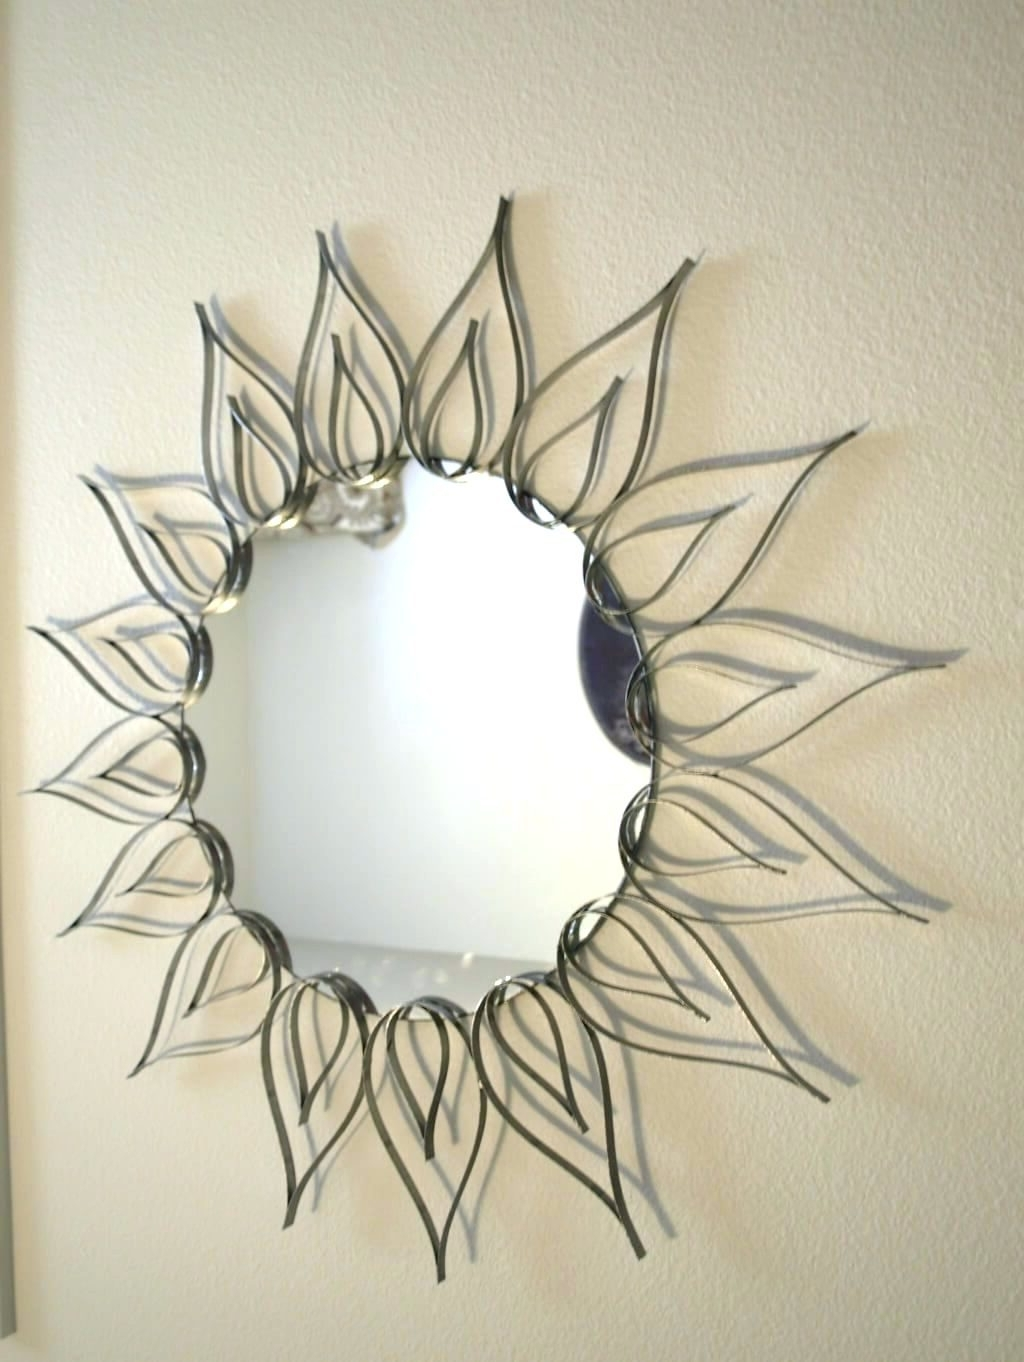 Wall Arts ~ Wall Mirrors Large Circle Mirror Wall Art Round In Best And Newest Small Round Mirrors Wall Art (View 14 of 15)